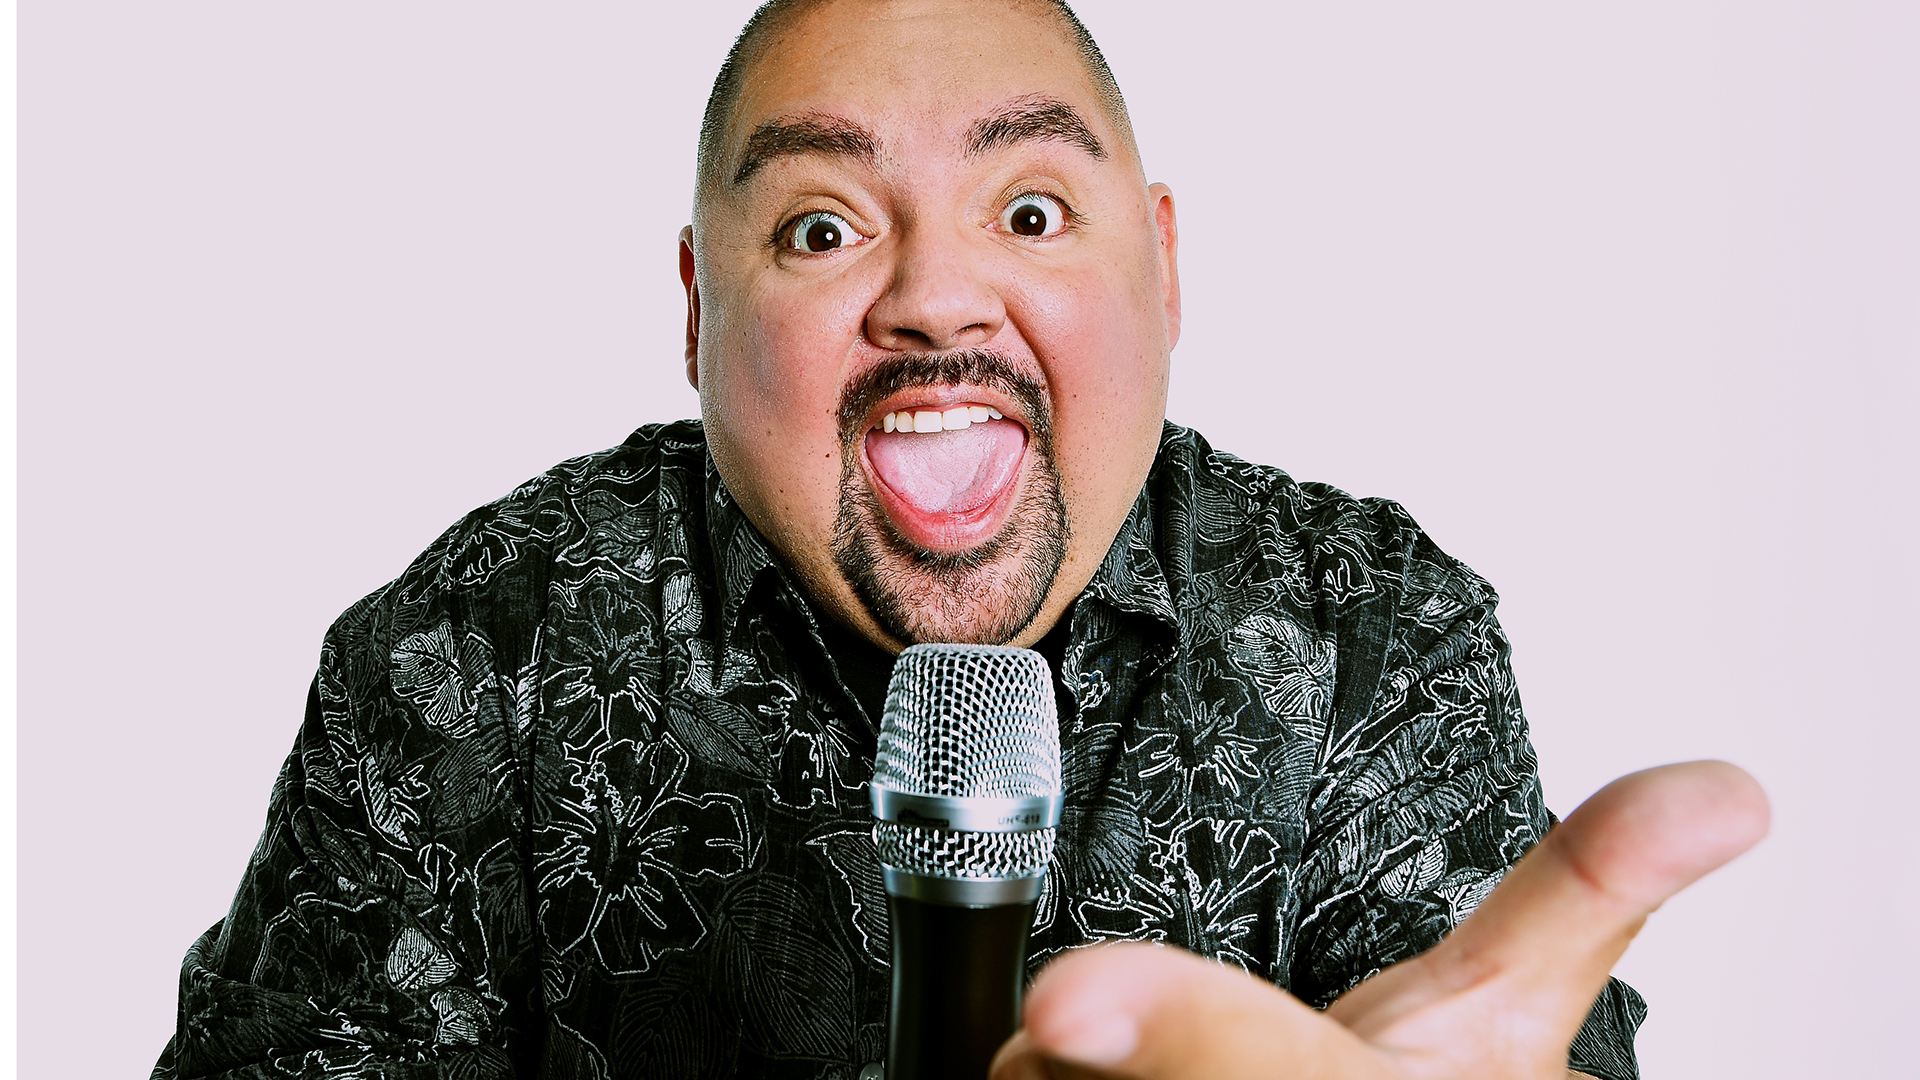 Play Here's Activity Roundup for Feb. 15 to 22, with Gabriel Iglesias, Ink Life, Dwight Yoakam, theater, more